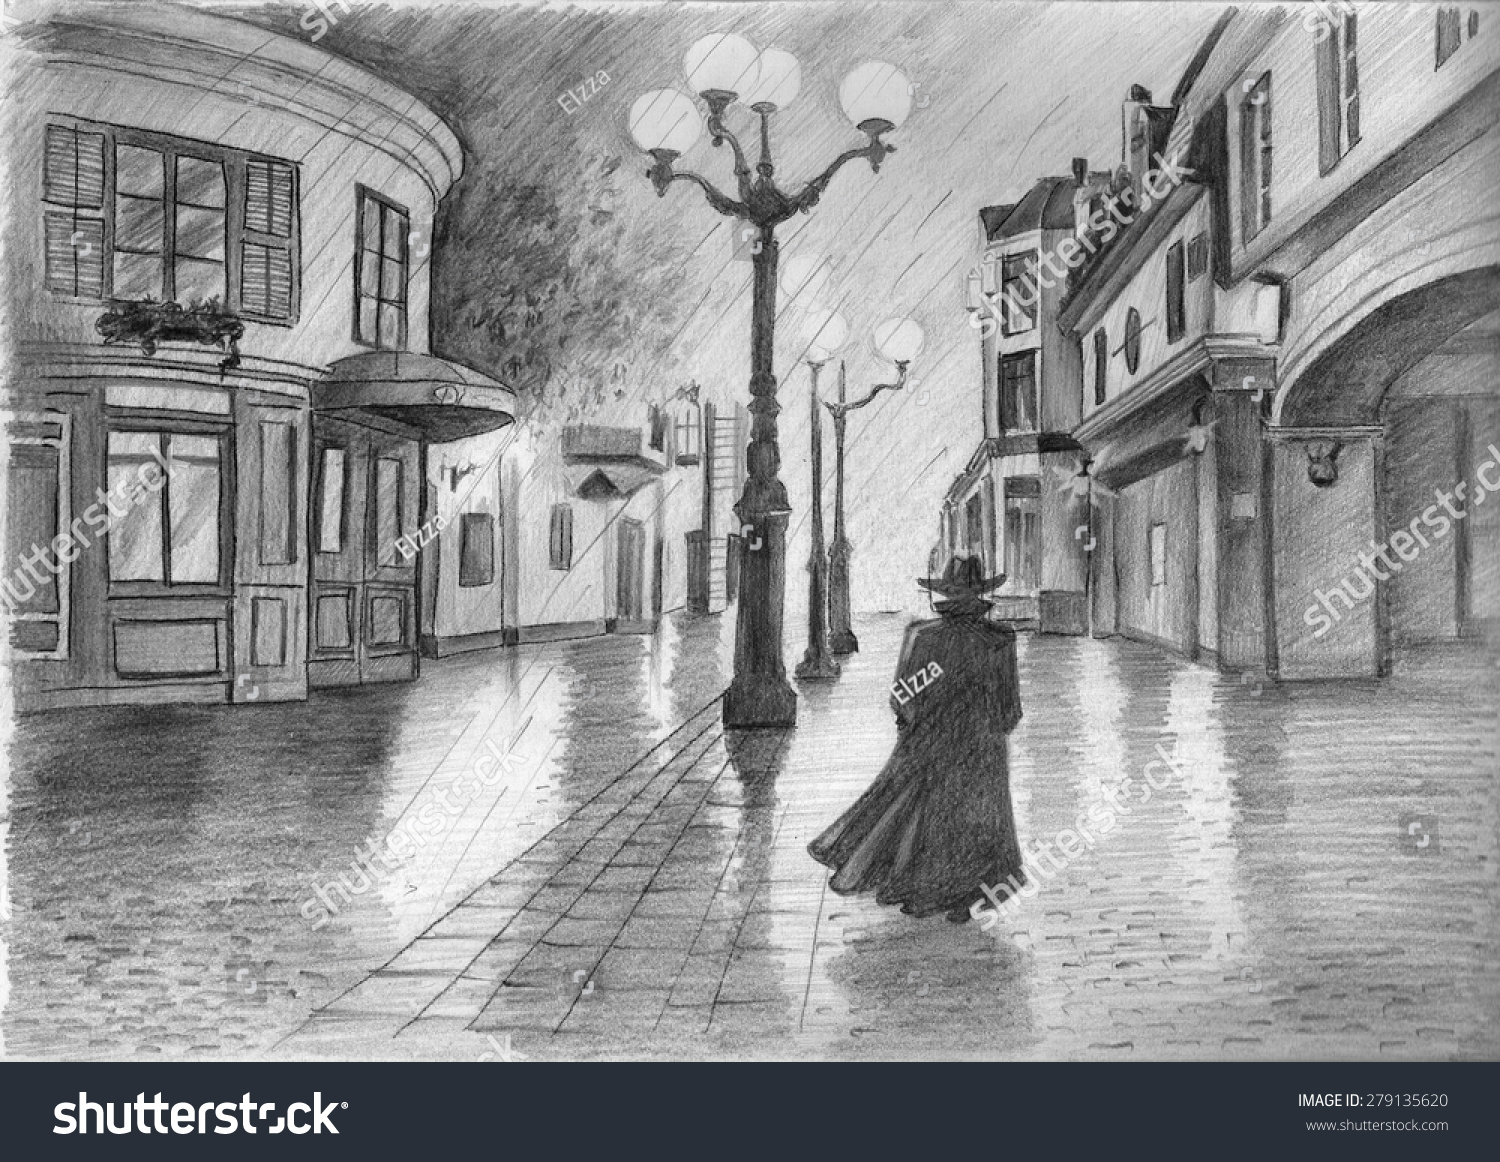 Europe rainy old city street at night pencil sketch illustration